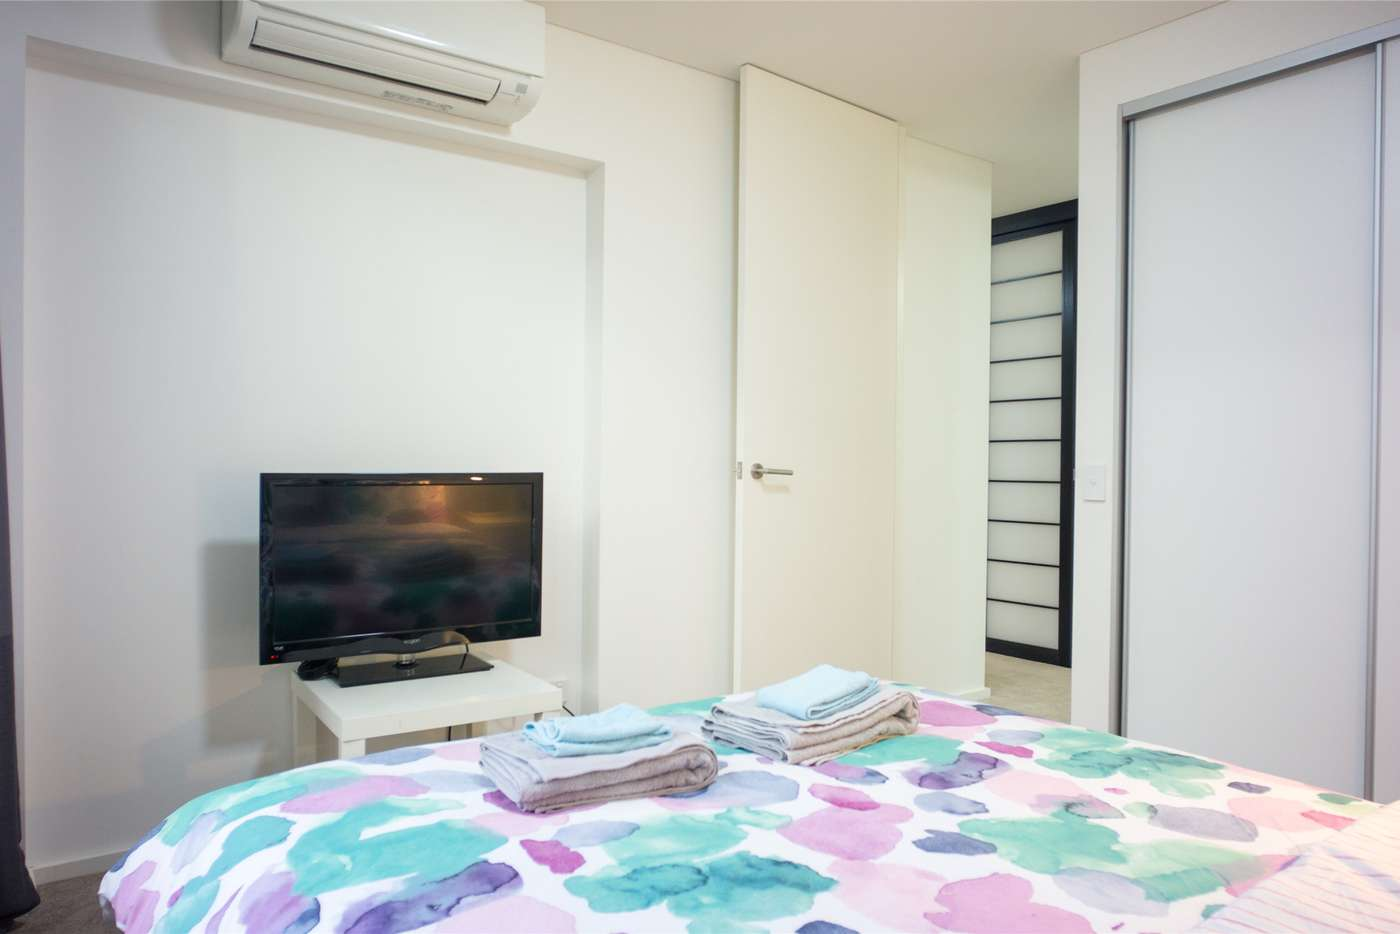 Sixth view of Homely apartment listing, 205/250 Flinders Street, Adelaide SA 5000